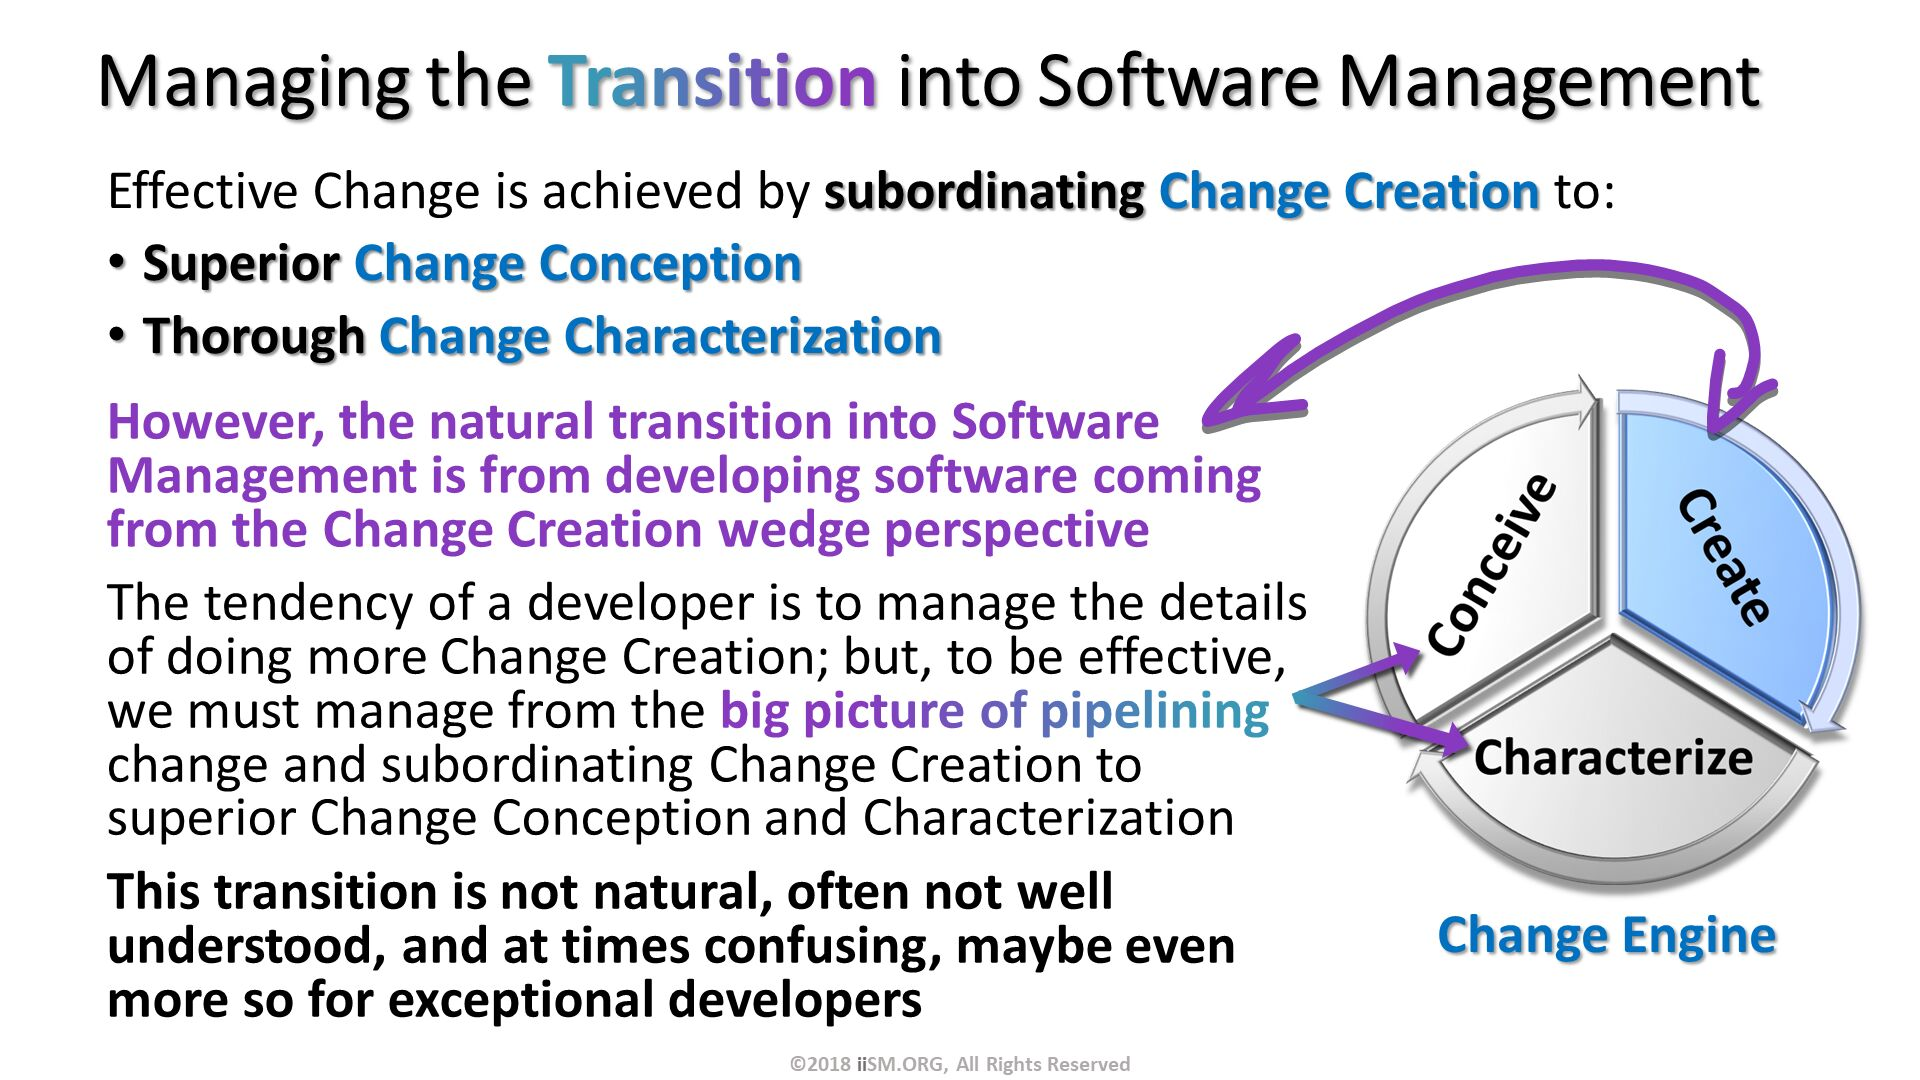 Managing the Transition into Software Management. Effective Change is achieved by subordinating Change Creation to: Superior Change Conception Thorough Change Characterization. ©2018 iiSM.ORG, All Rights Reserved. However, the natural transition into Software Management is from developing software coming from the Change Creation wedge perspective. Change Engine . The tendency of a developer is to manage the details of doing more Change Creation; but, to be effective, we must manage from the big picture of pipelining change and subordinating Change Creation to superior Change Conception and Characterization This transition is not natural, often not well understood, and at times confusing, maybe even more so for exceptional developers .